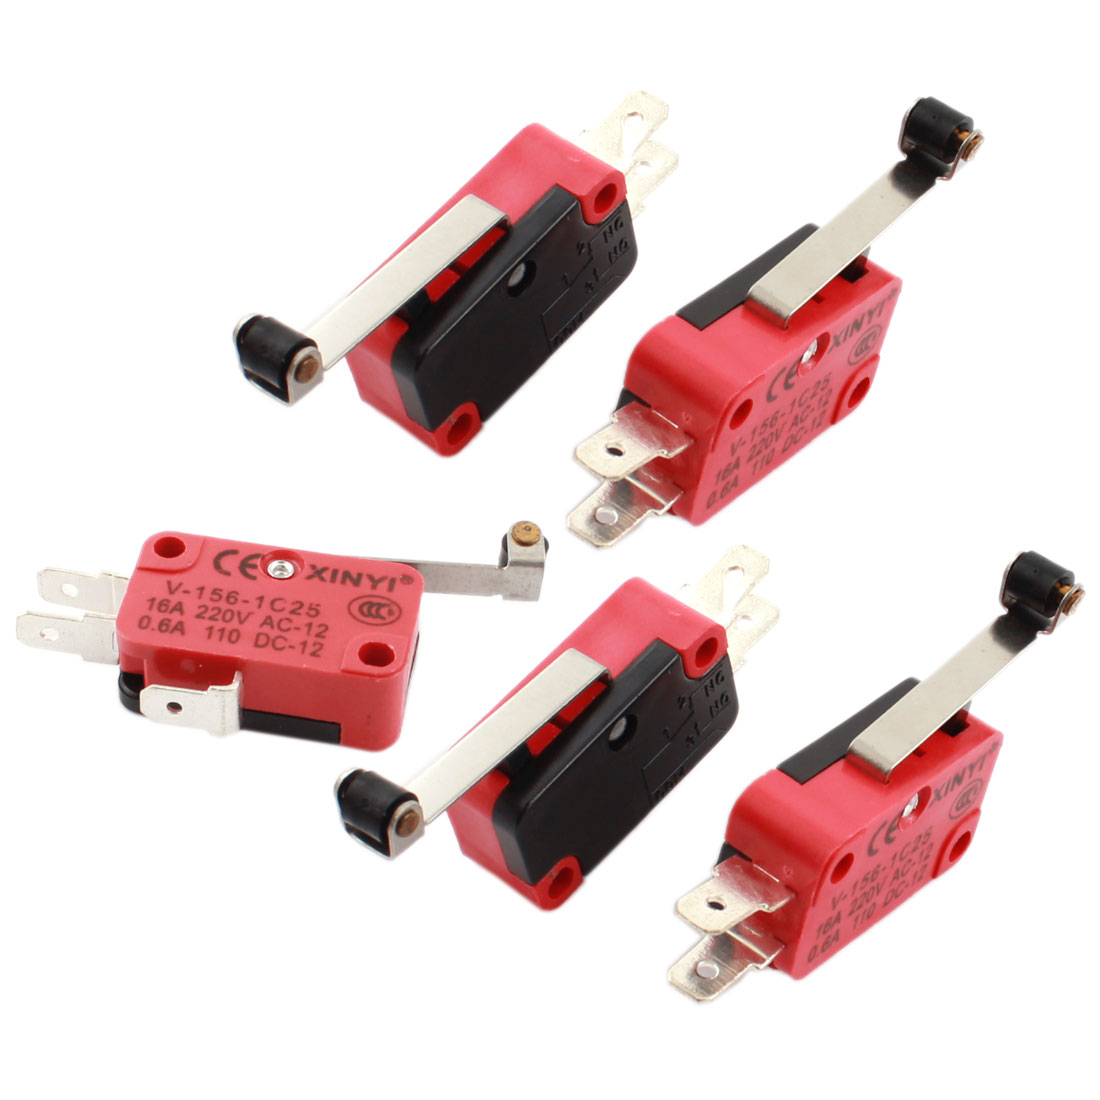 5 Pcs Mini Micro Limit Switch Long Hinge Roller Lever Arm SPDT Snap Action LOT